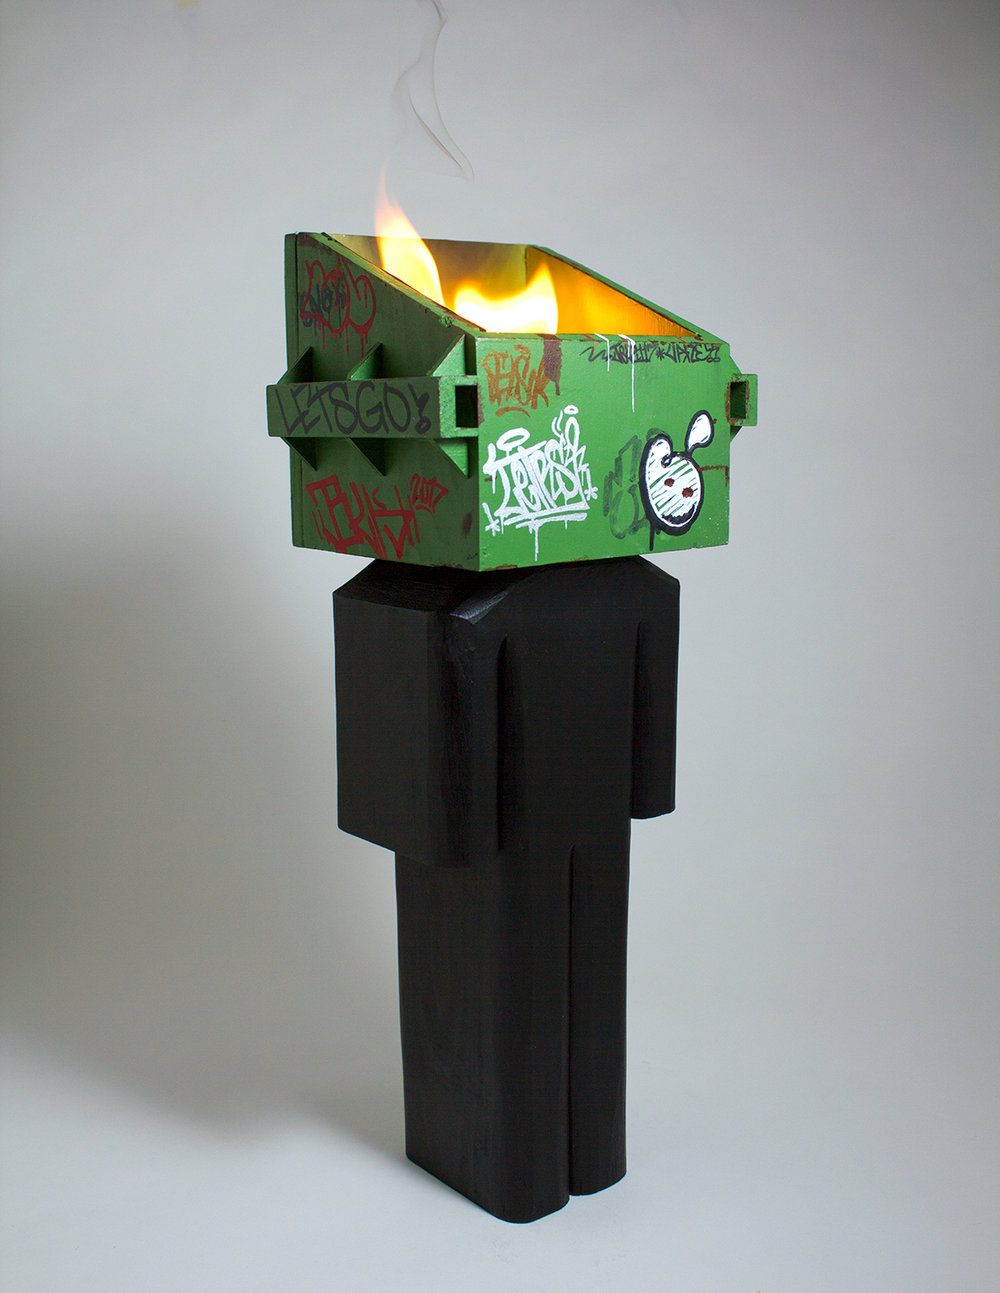 Dumpster Fire  mixed media and flame 14 x 5.5 x 4.25 inches CSK 026G